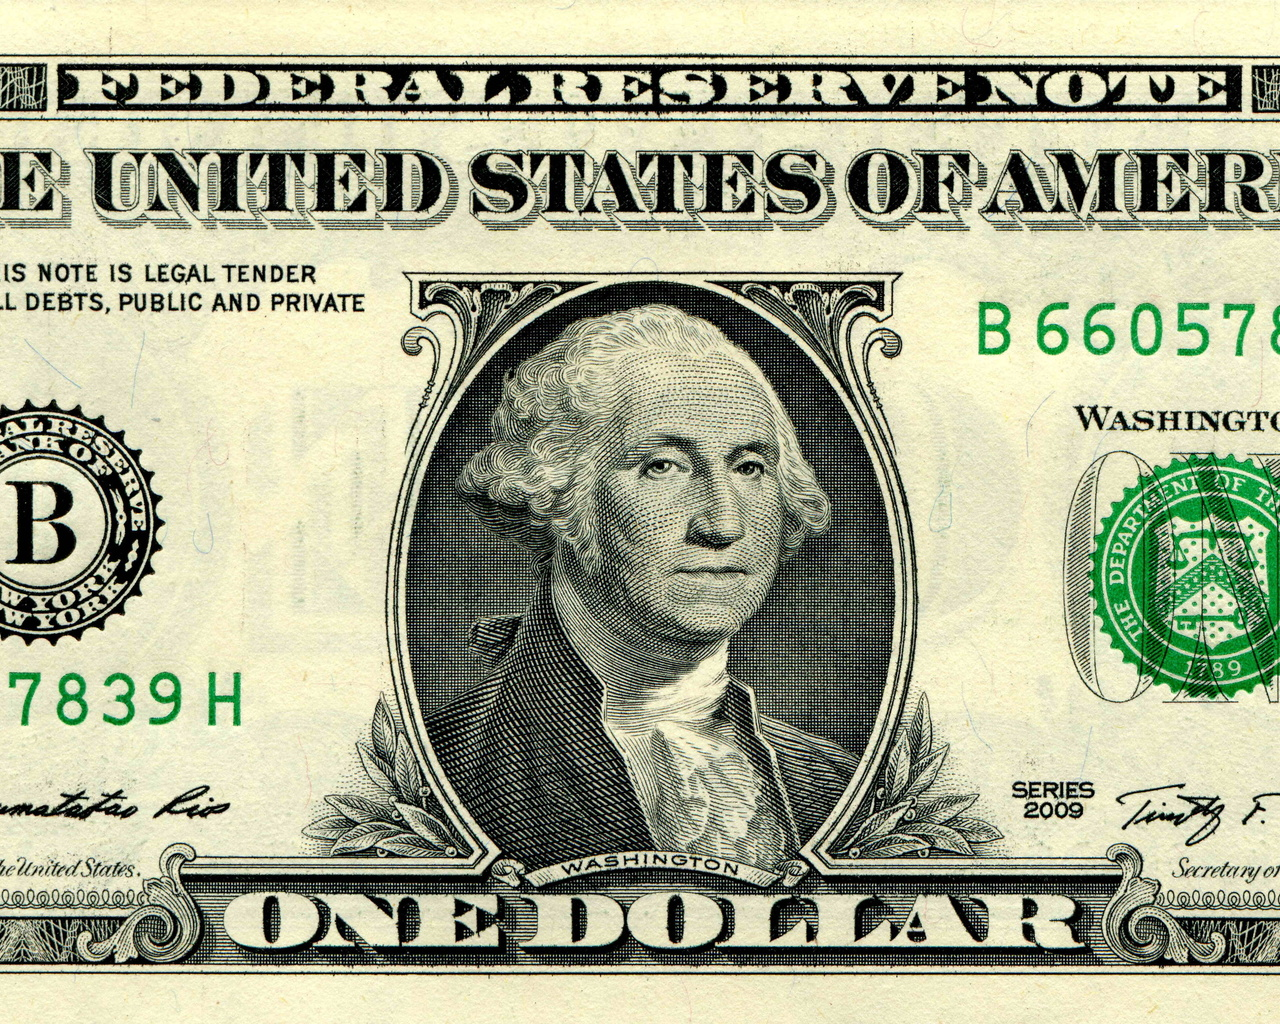 деньги, купюра, доллар, 1, washington, federal reserve note